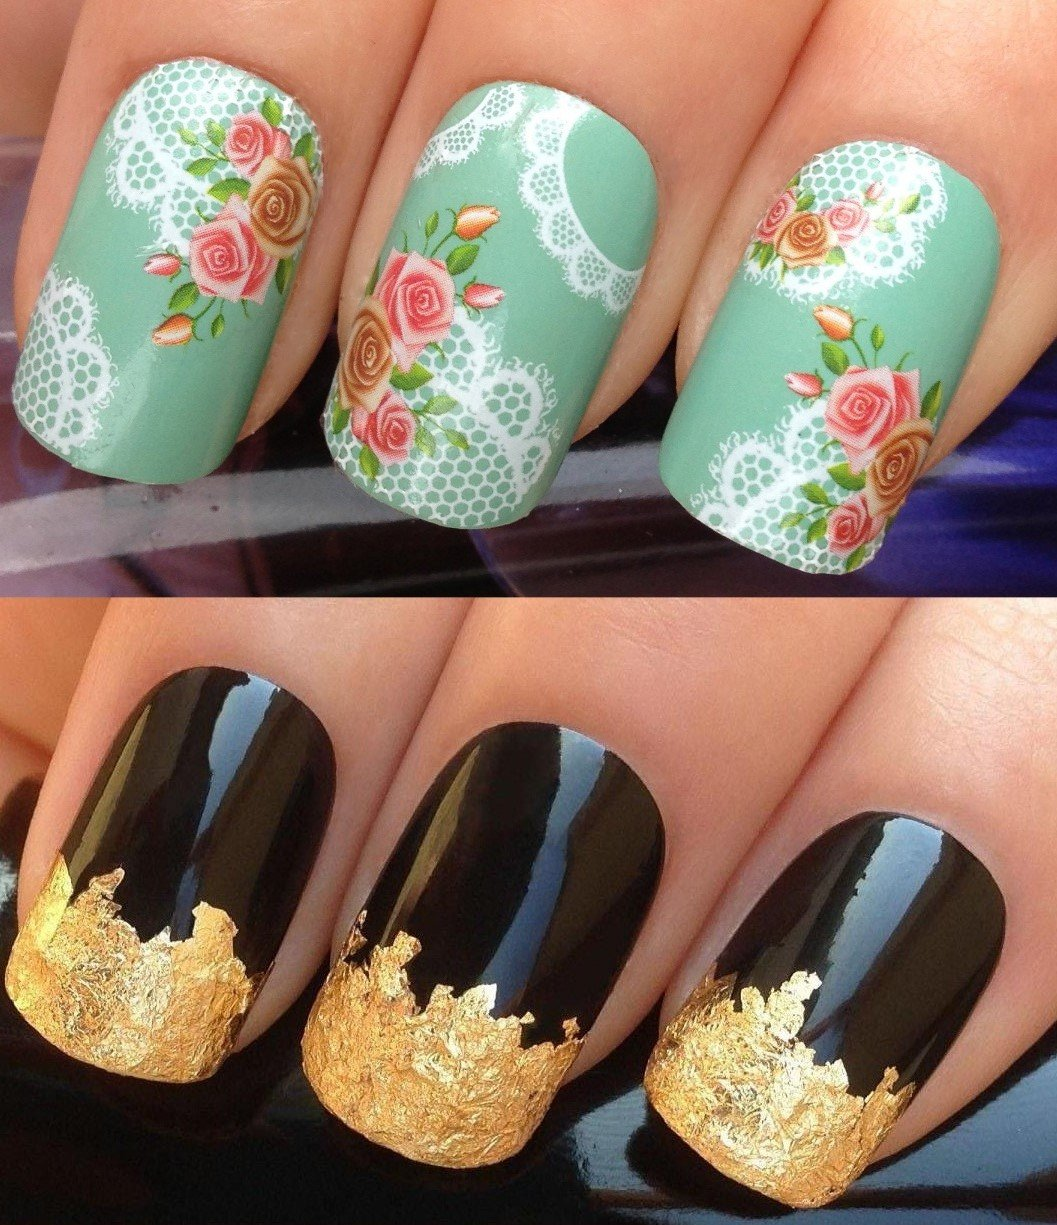 Nail decals water transfers stickers art set 181 plus gold leaf nail decals water transfers stickers art set 181 plus gold leaf sheet for custom designed nail white honeycomb scallop edged fine lace mesh english prinsesfo Images